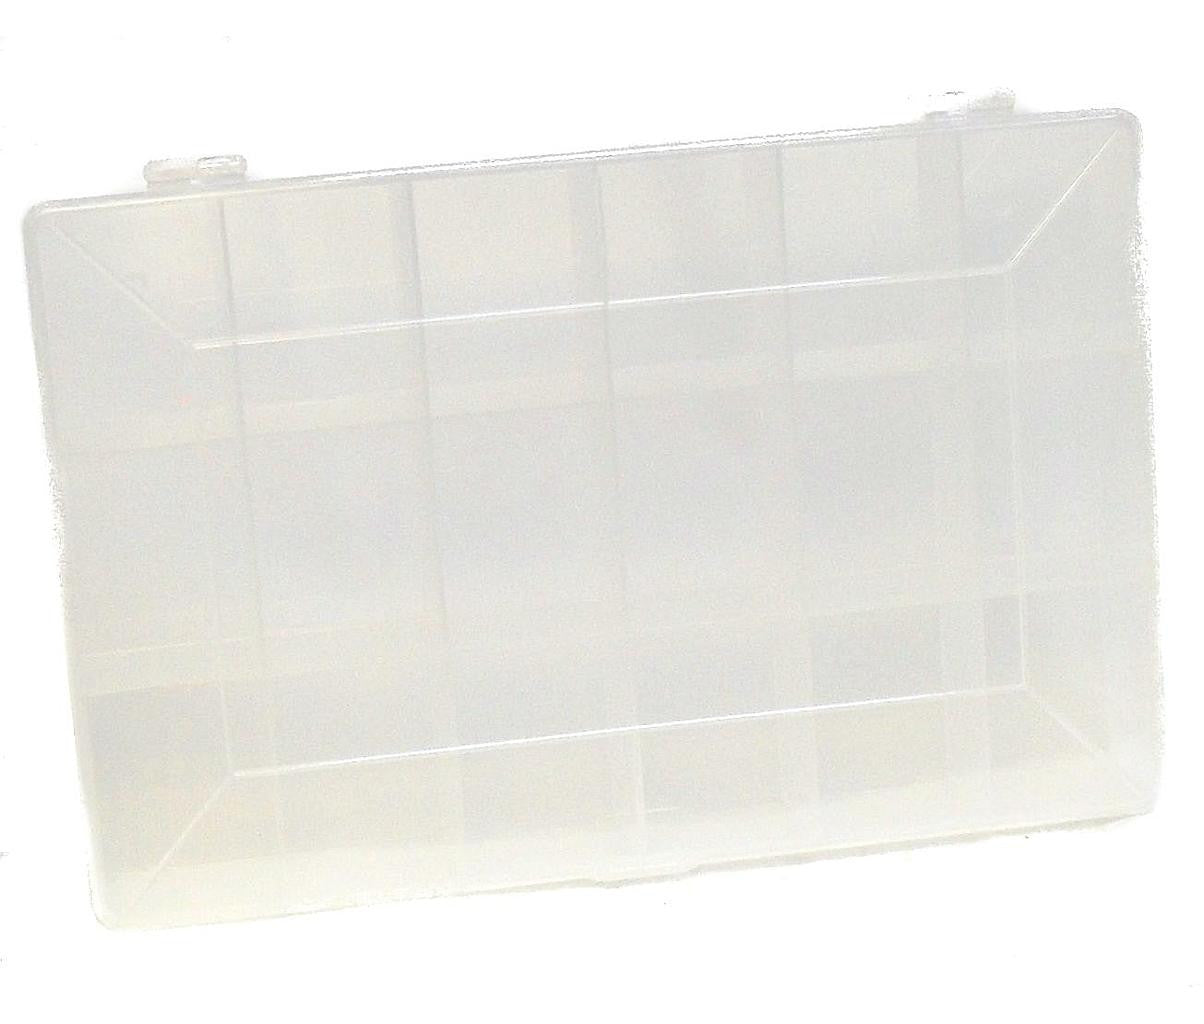 05436 - Clear Display Box 18 compartments - Lampfix - sparks-warehouse